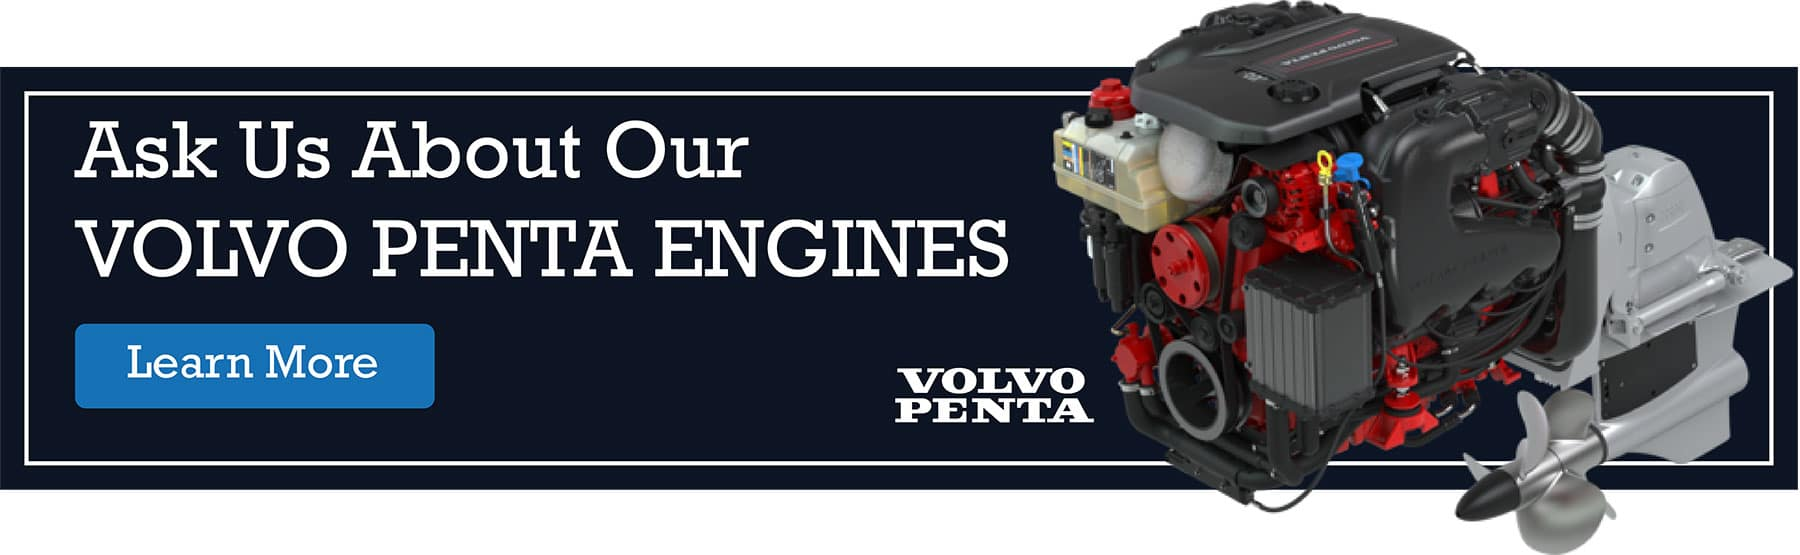 VolvoPentaEngines